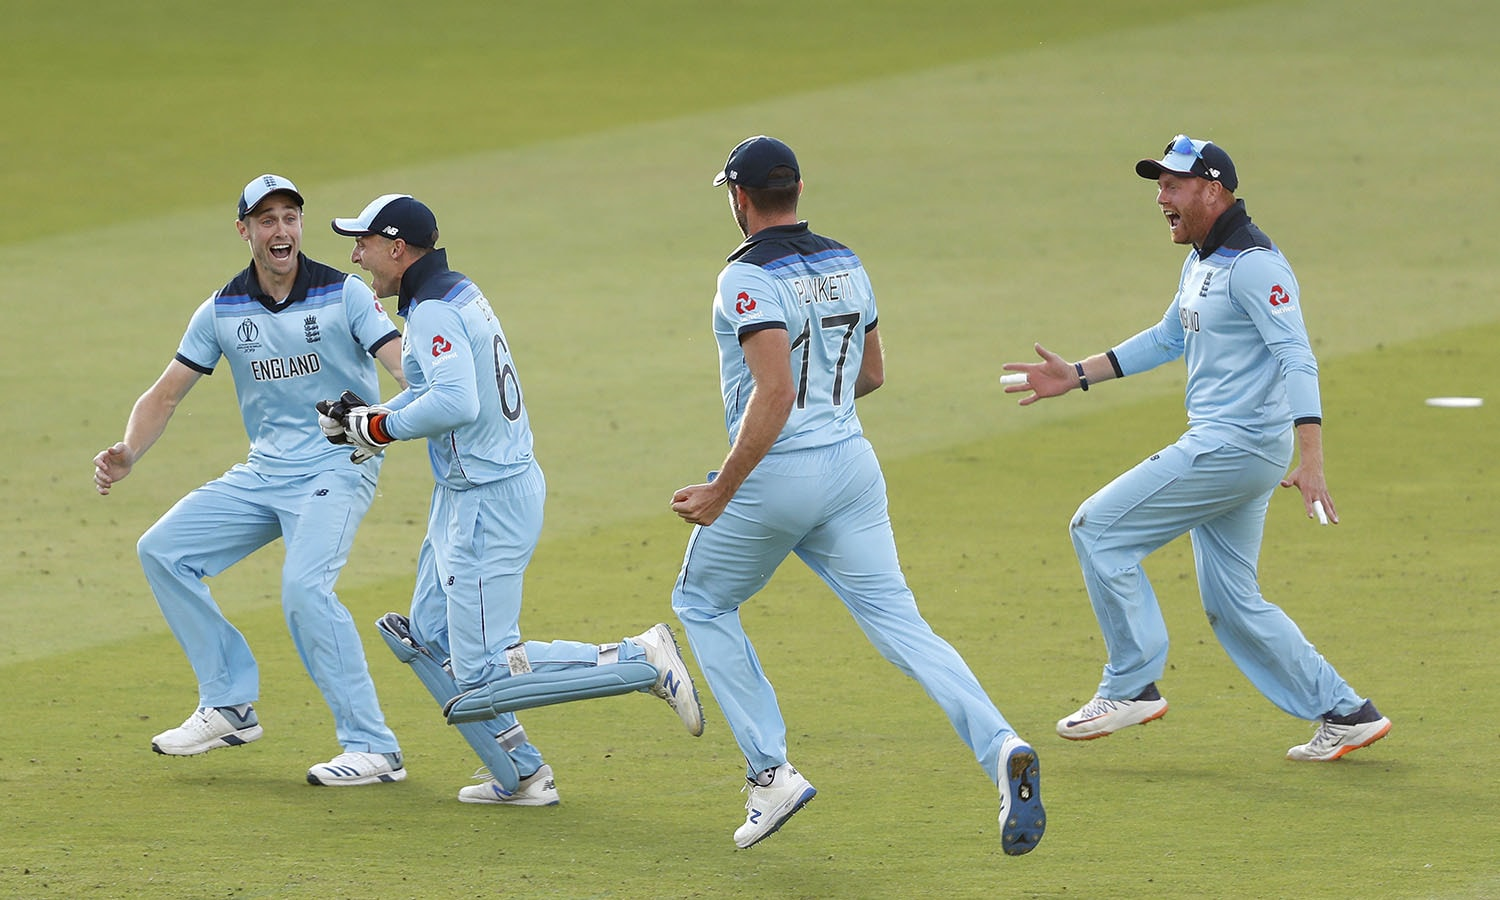 England celebrates after running out New Zealand's Martin Guptill to win the Cricket World Cup. — AP